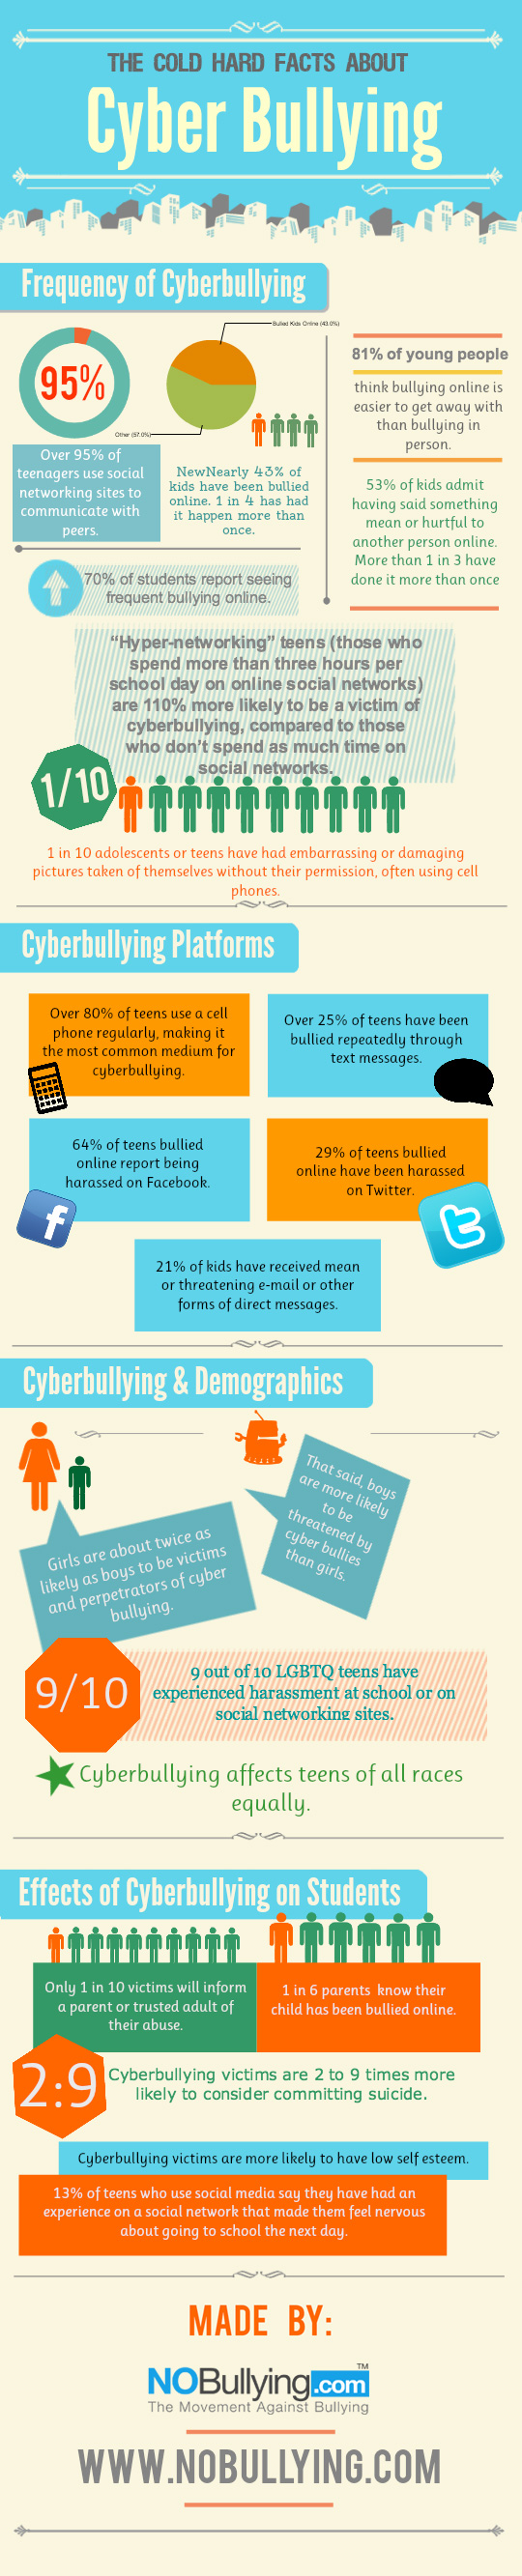 Cyber bullying stats